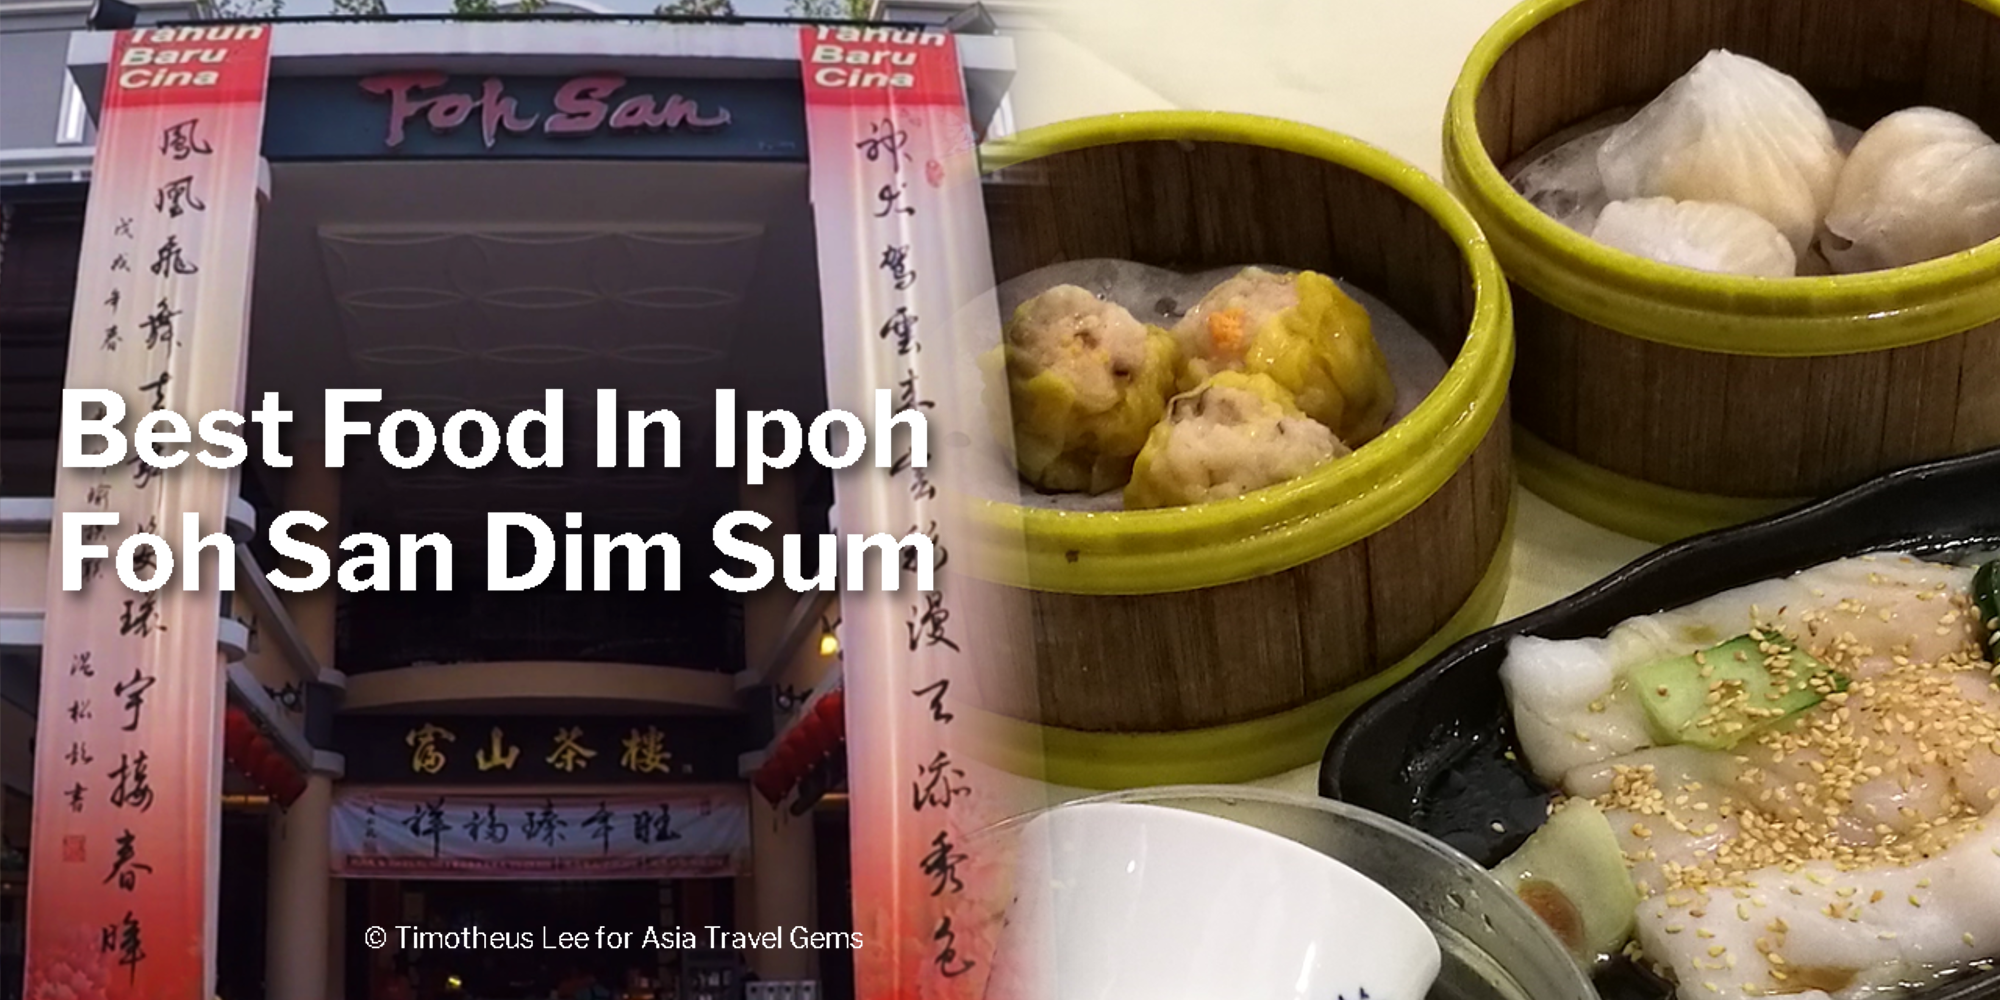 Best Food In Ipoh - Foh San Dim Sum Restaurant (富山茶楼)